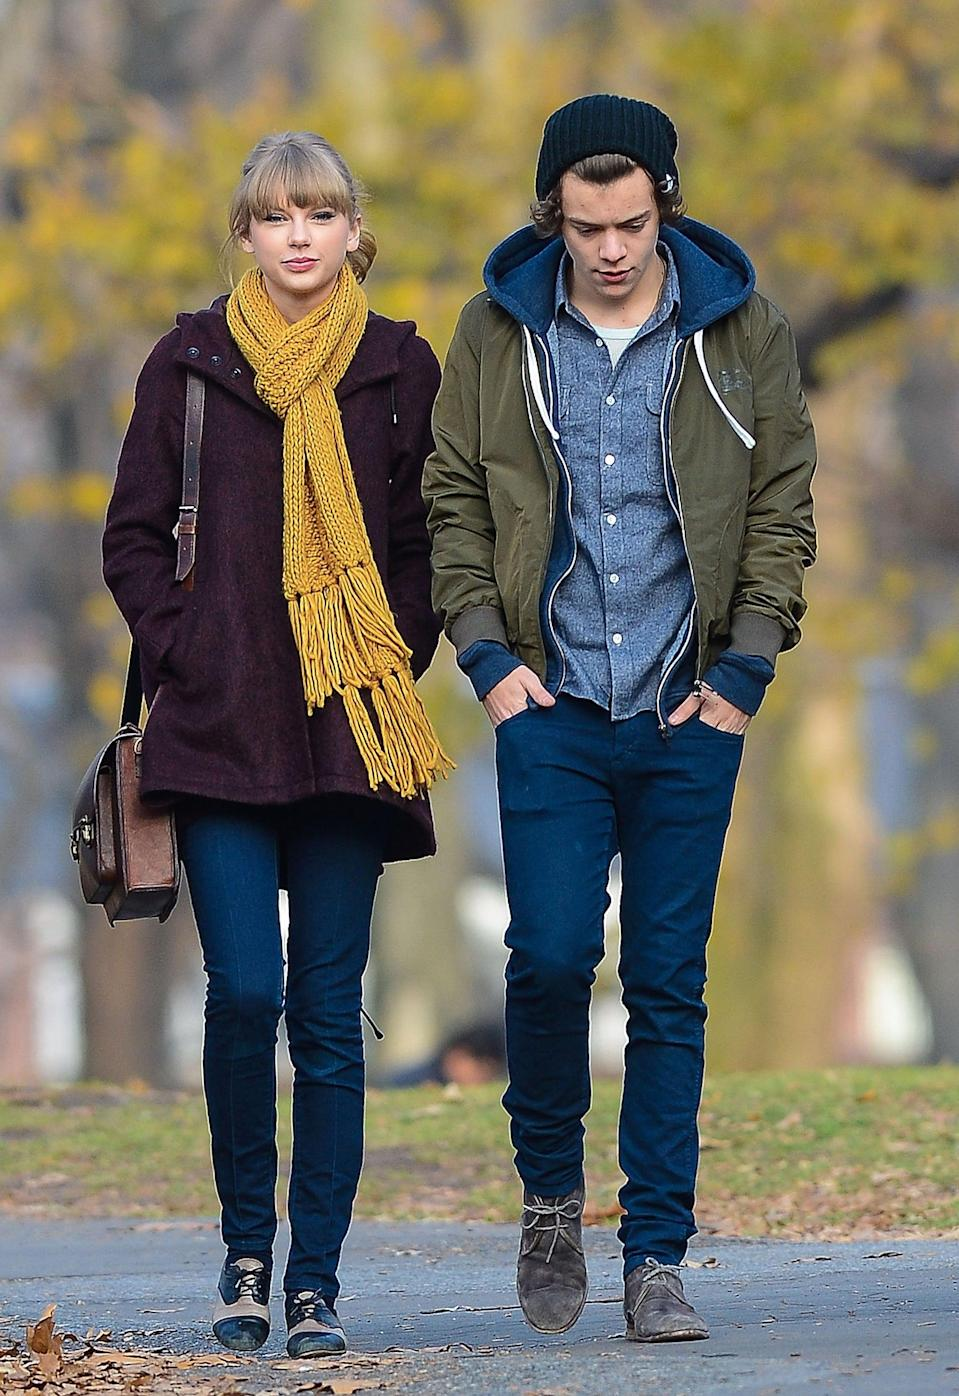 """<p><strong>When:</strong> December 2012 - January 2013</p> <p>Taylor's roller coaster relationship with One Direction's Harry Styles might have only lasted a month, but it had to have been passionate. How else did she get <a href=""""https://www.popsugar.com/entertainment/Best-Songs-From-Taylor-Swift-Album-1989-36003858"""" class=""""link rapid-noclick-resp"""" rel=""""nofollow noopener"""" target=""""_blank"""" data-ylk=""""slk:an entire album"""">an entire album</a> out of it?! Harry and Taylor were seen strolling through NYC in December 2012 and even ushered in the new year with <a href=""""https://www.popsugar.com/celebrity/Taylor-Swift-Harry-Styles-New-Year-Eve-Pictures-26546559"""" class=""""link rapid-noclick-resp"""" rel=""""nofollow noopener"""" target=""""_blank"""" data-ylk=""""slk:a kiss at midnight"""">a kiss at midnight</a>. Before January was over, they'd called it quits, and one of Taylor's biggest singles off of <strong>Red</strong>, """"I Knew You Were Trouble,"""" started a long list of songs inspired by him.</p>"""